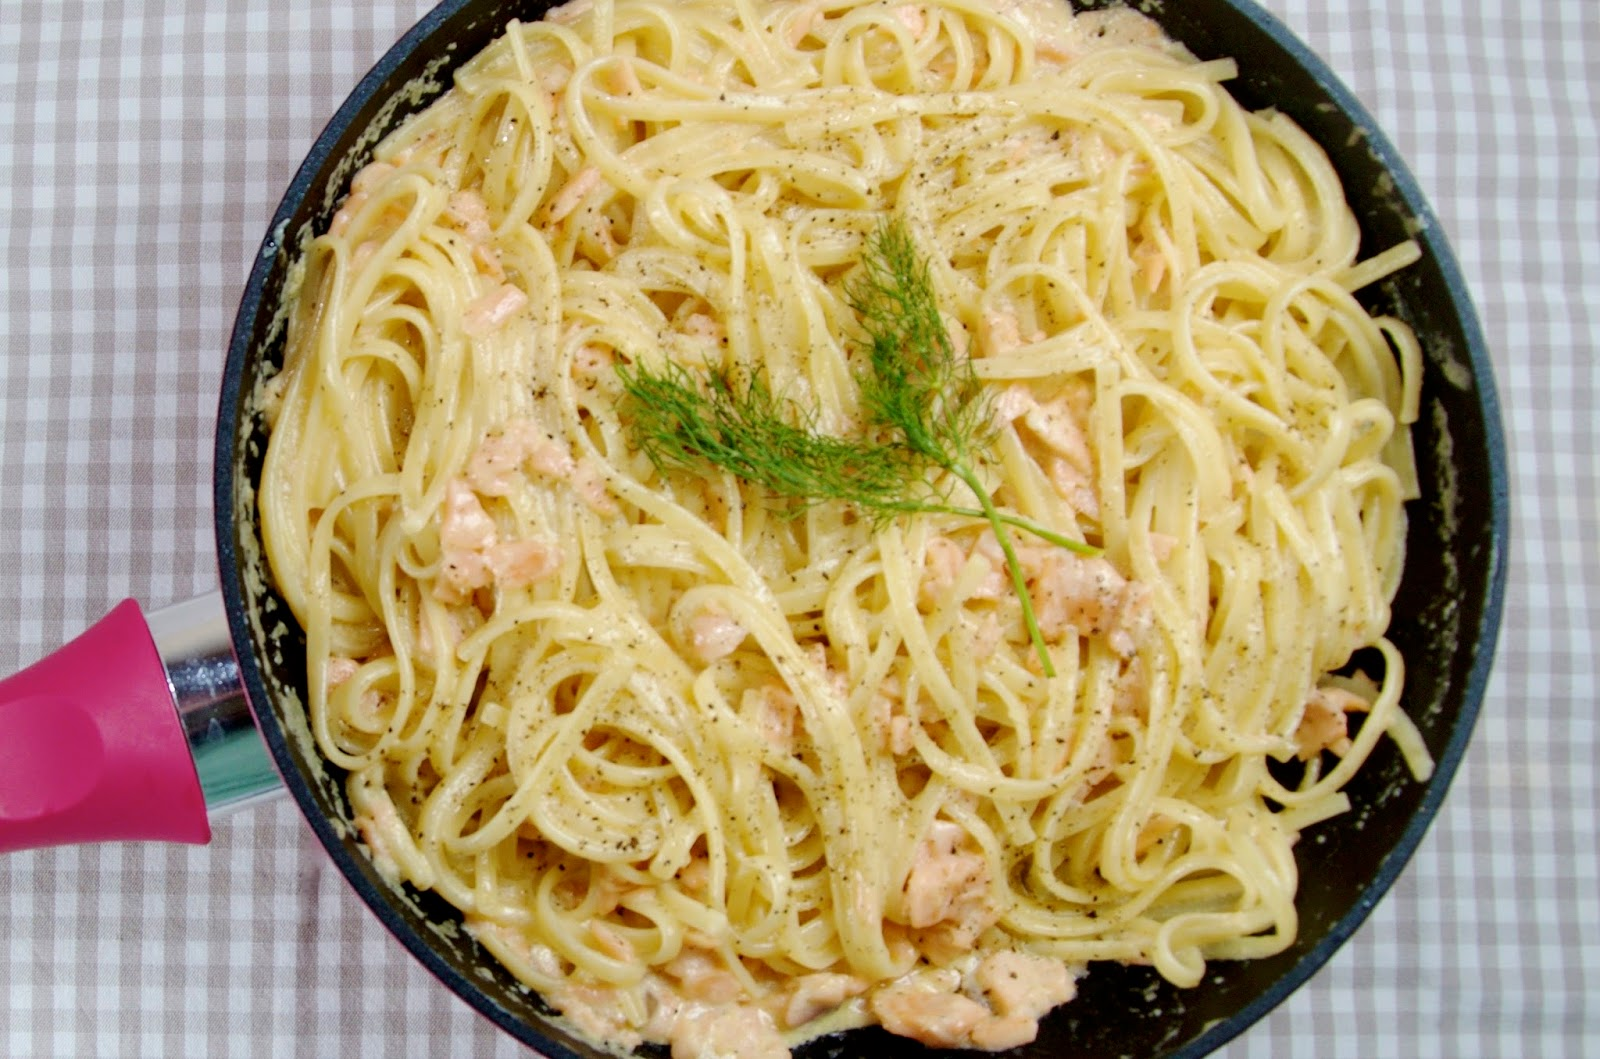 Linguine with smoked salmon in fuchsia frying pan